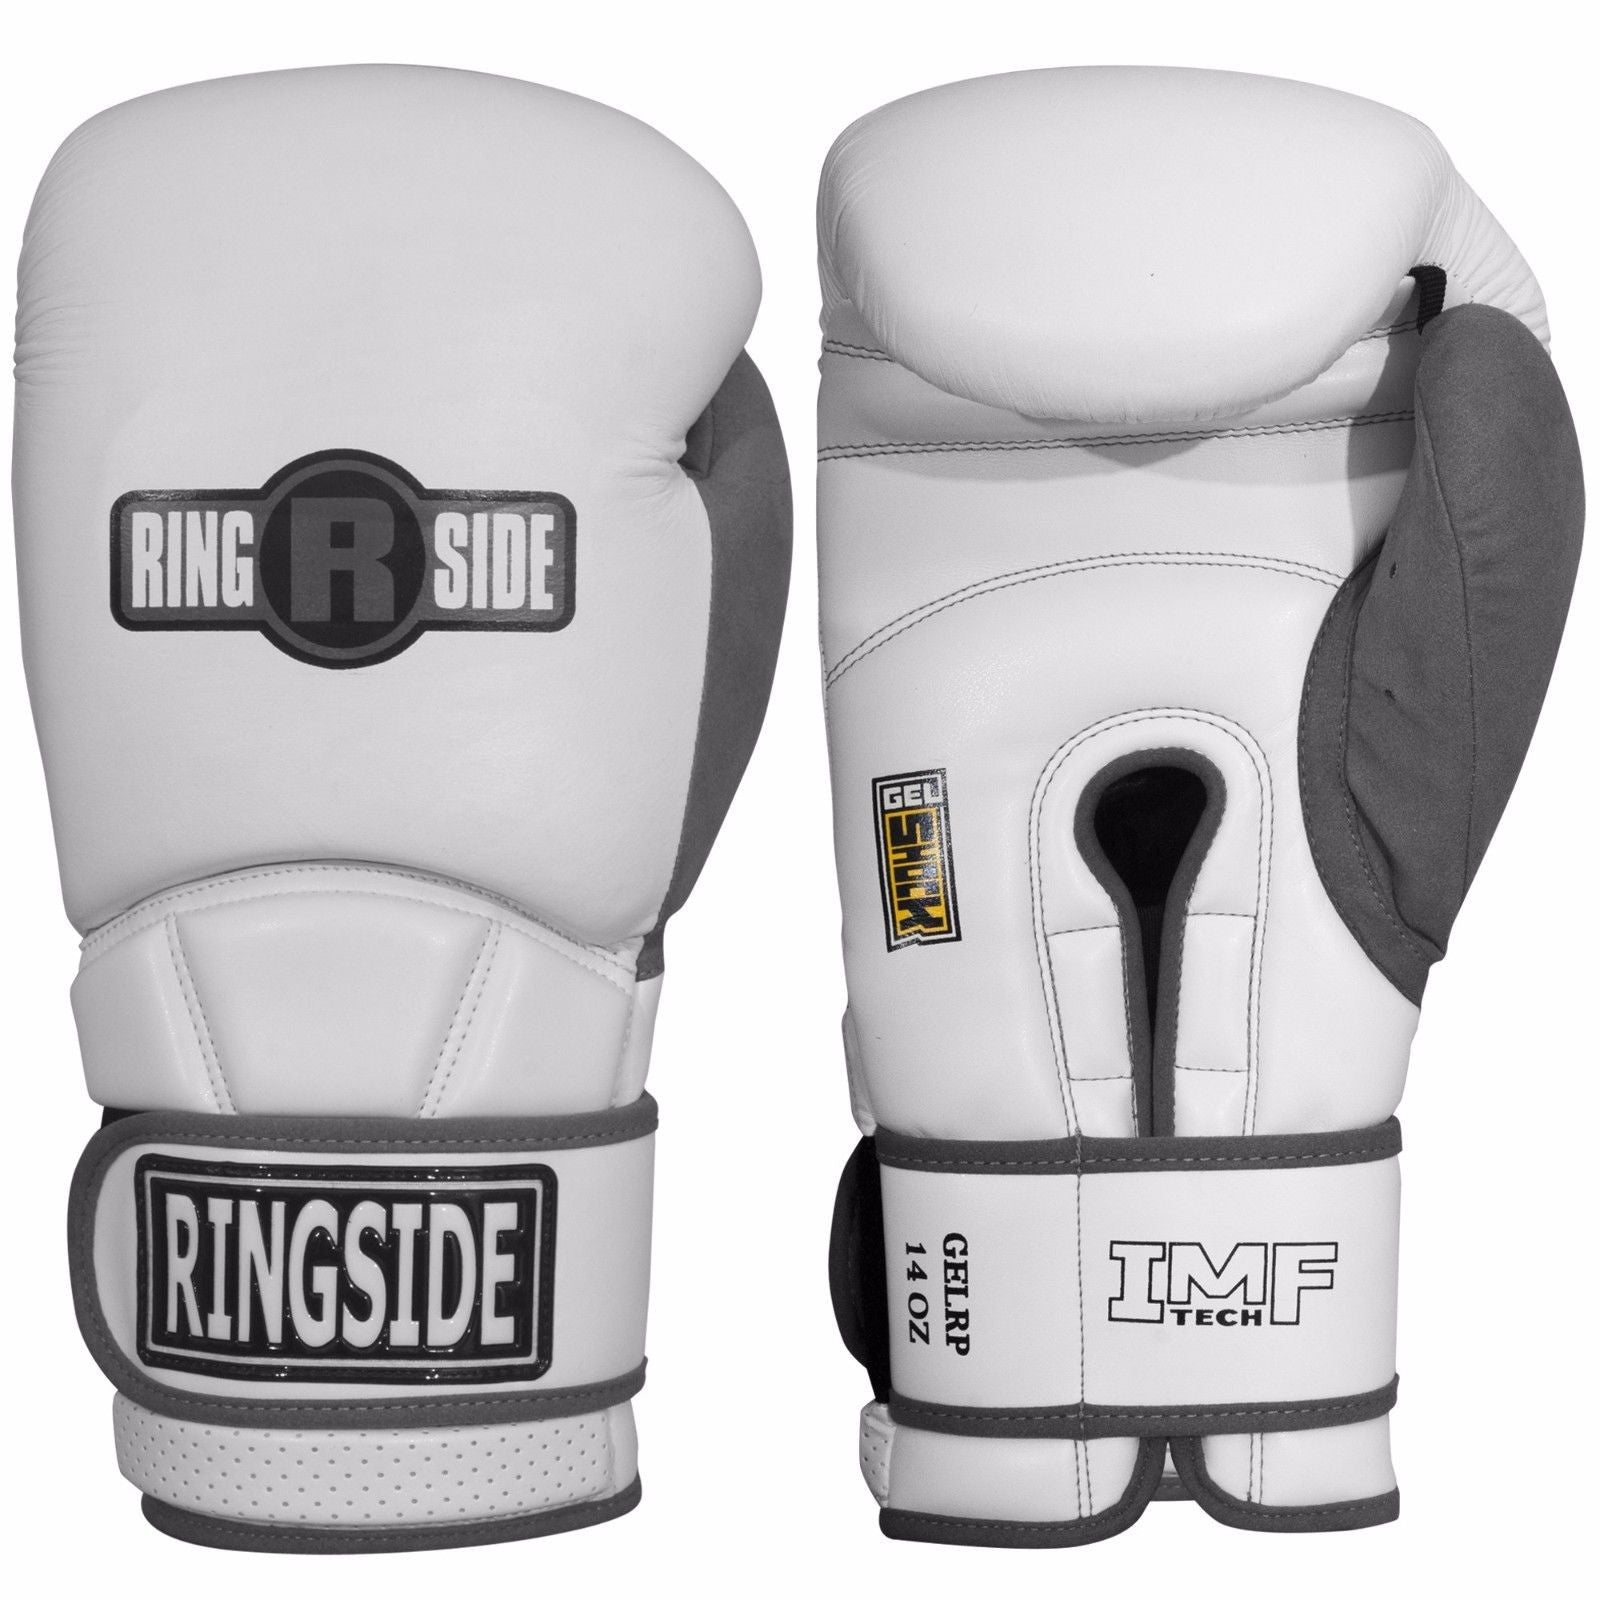 RINGSIDE GLOVES GELRP SUEDE THUMB WHITE / GREY - MSM FIGHT SHOP